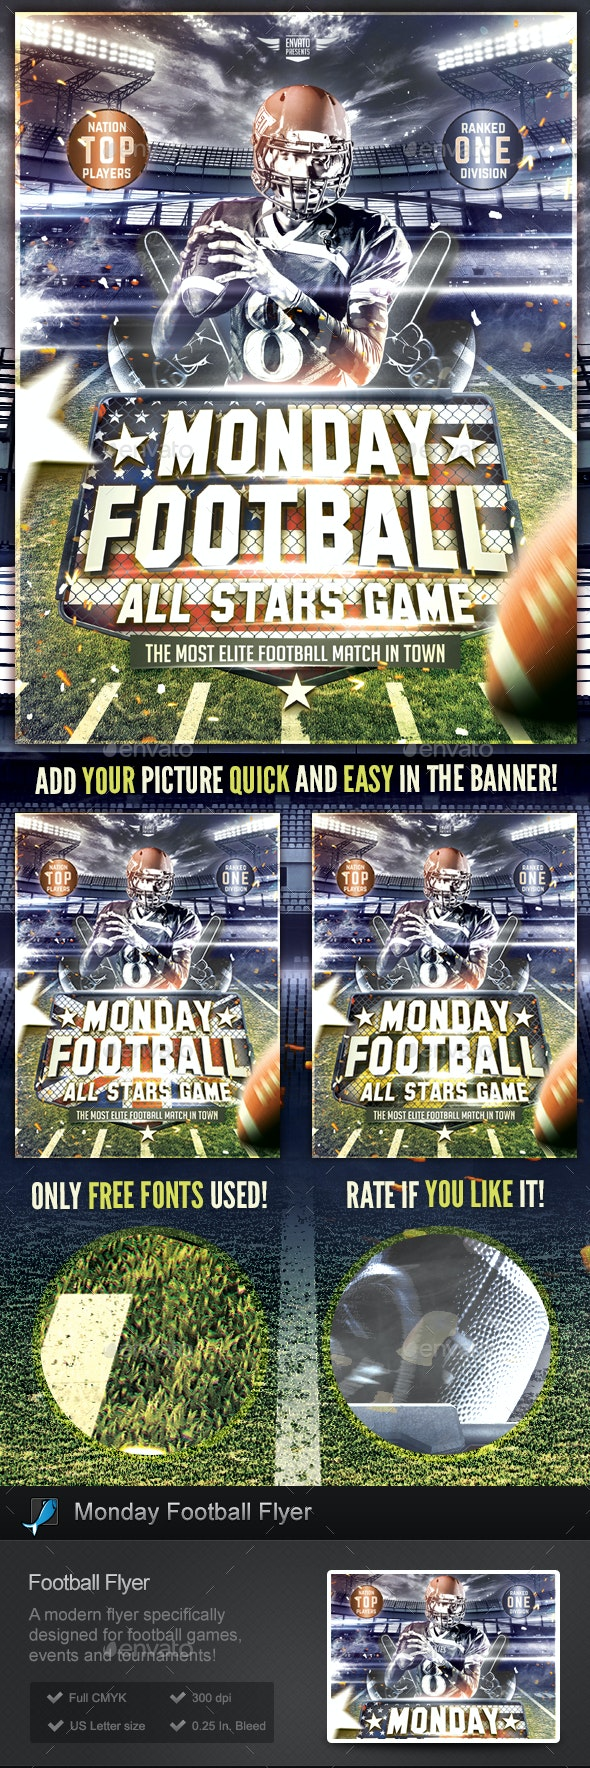 Monday Football Flyer Template - Sports Events